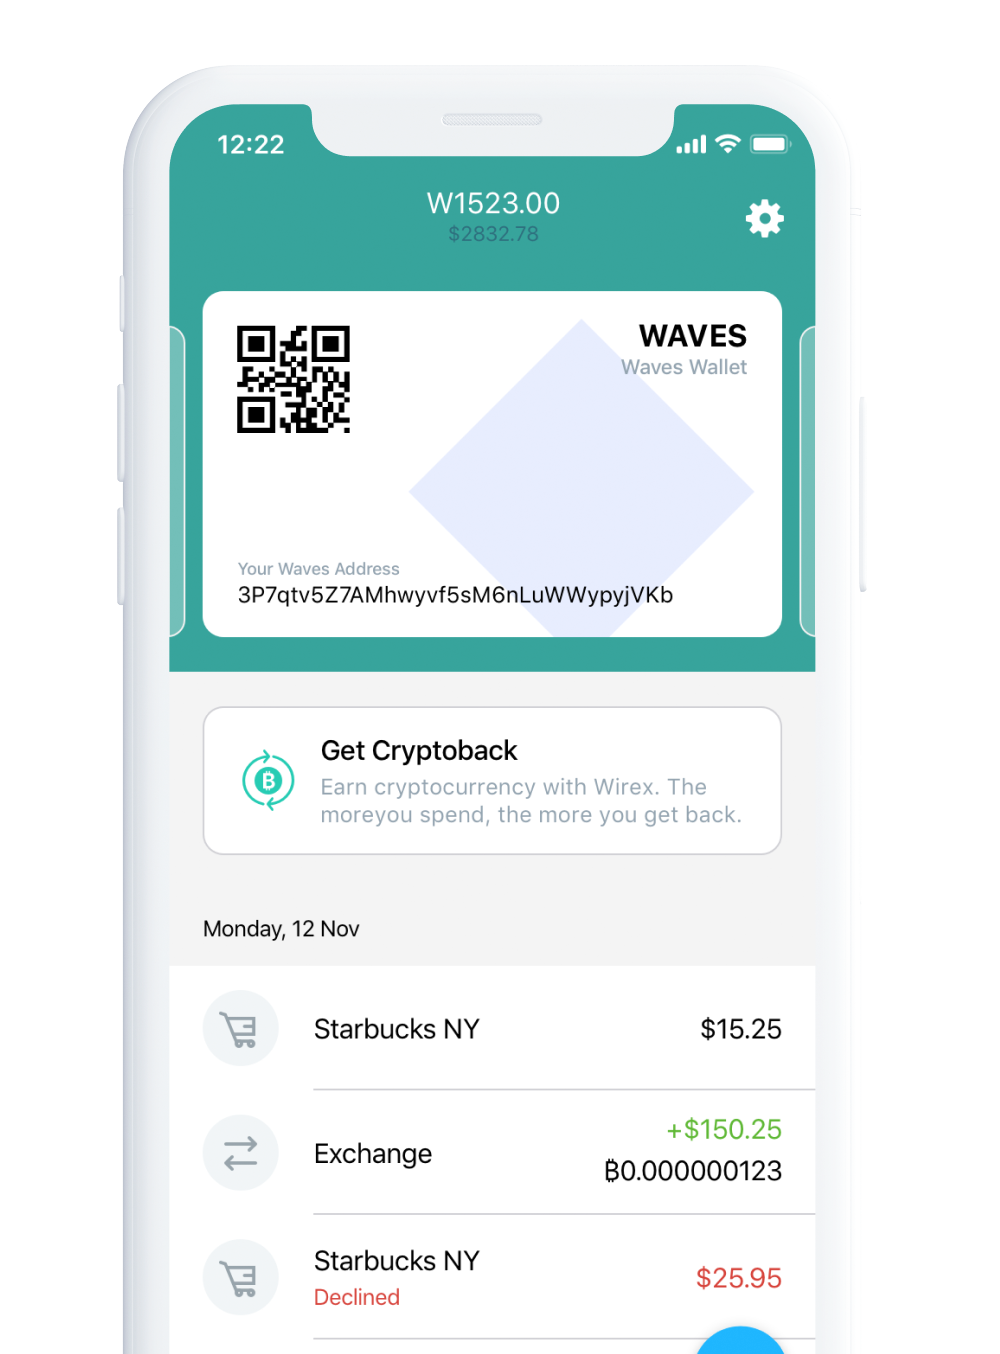 Waves account